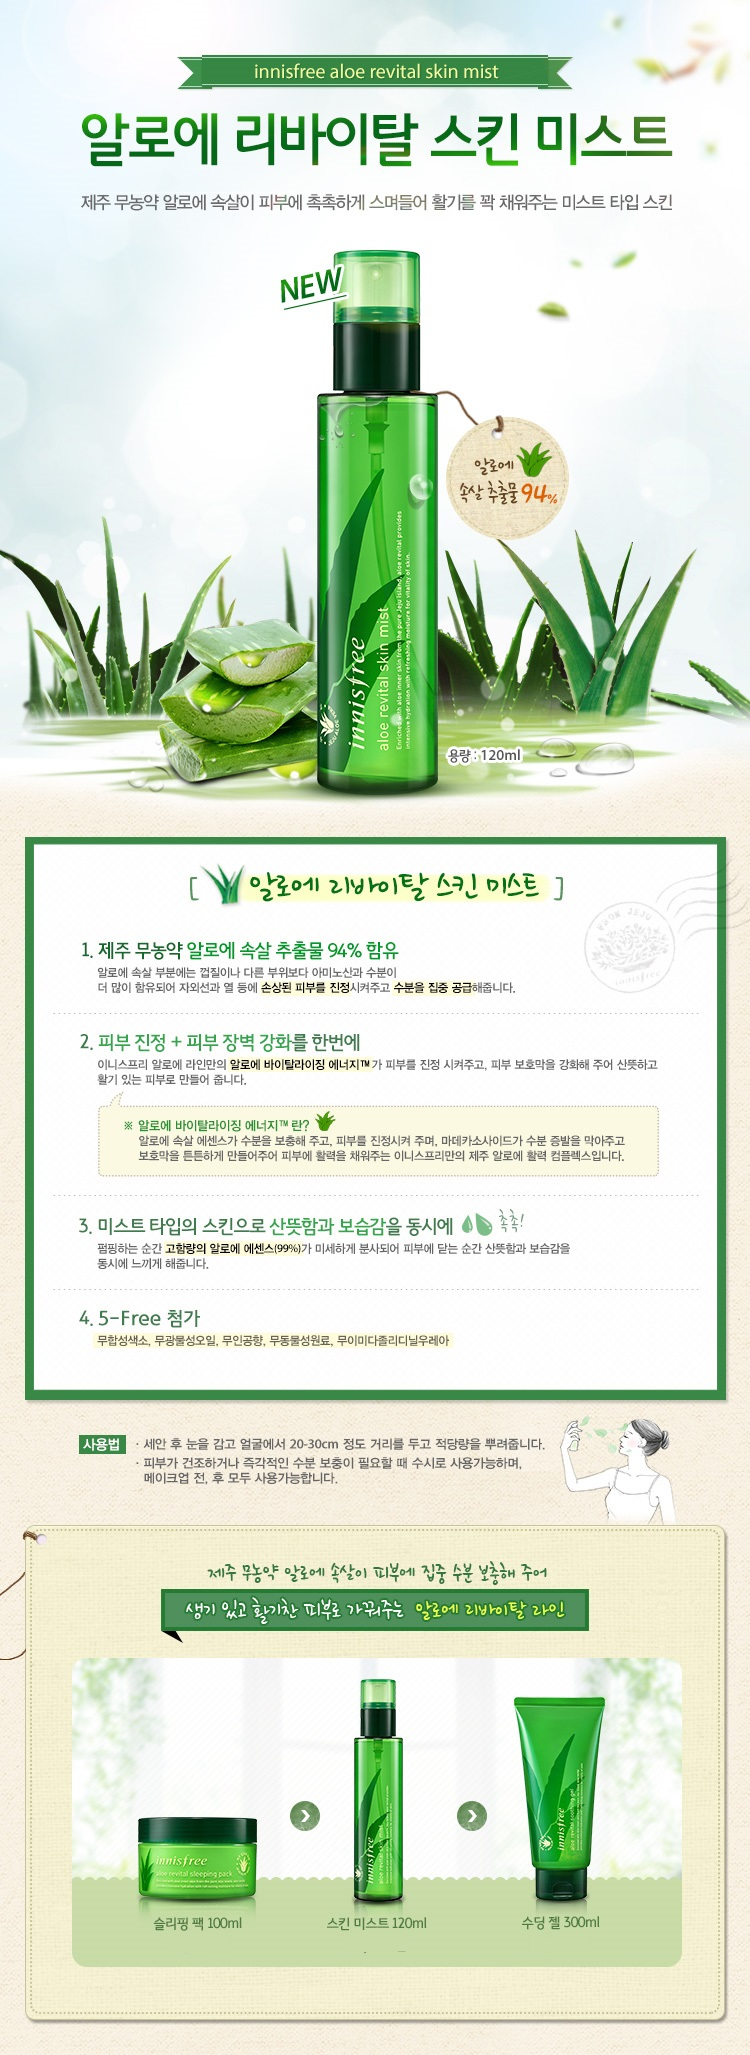 Buy Innisfree Aloe Revital Skin Mist 120ml Deals For Only S23 Vera Soothing Gel 300ml Highlights